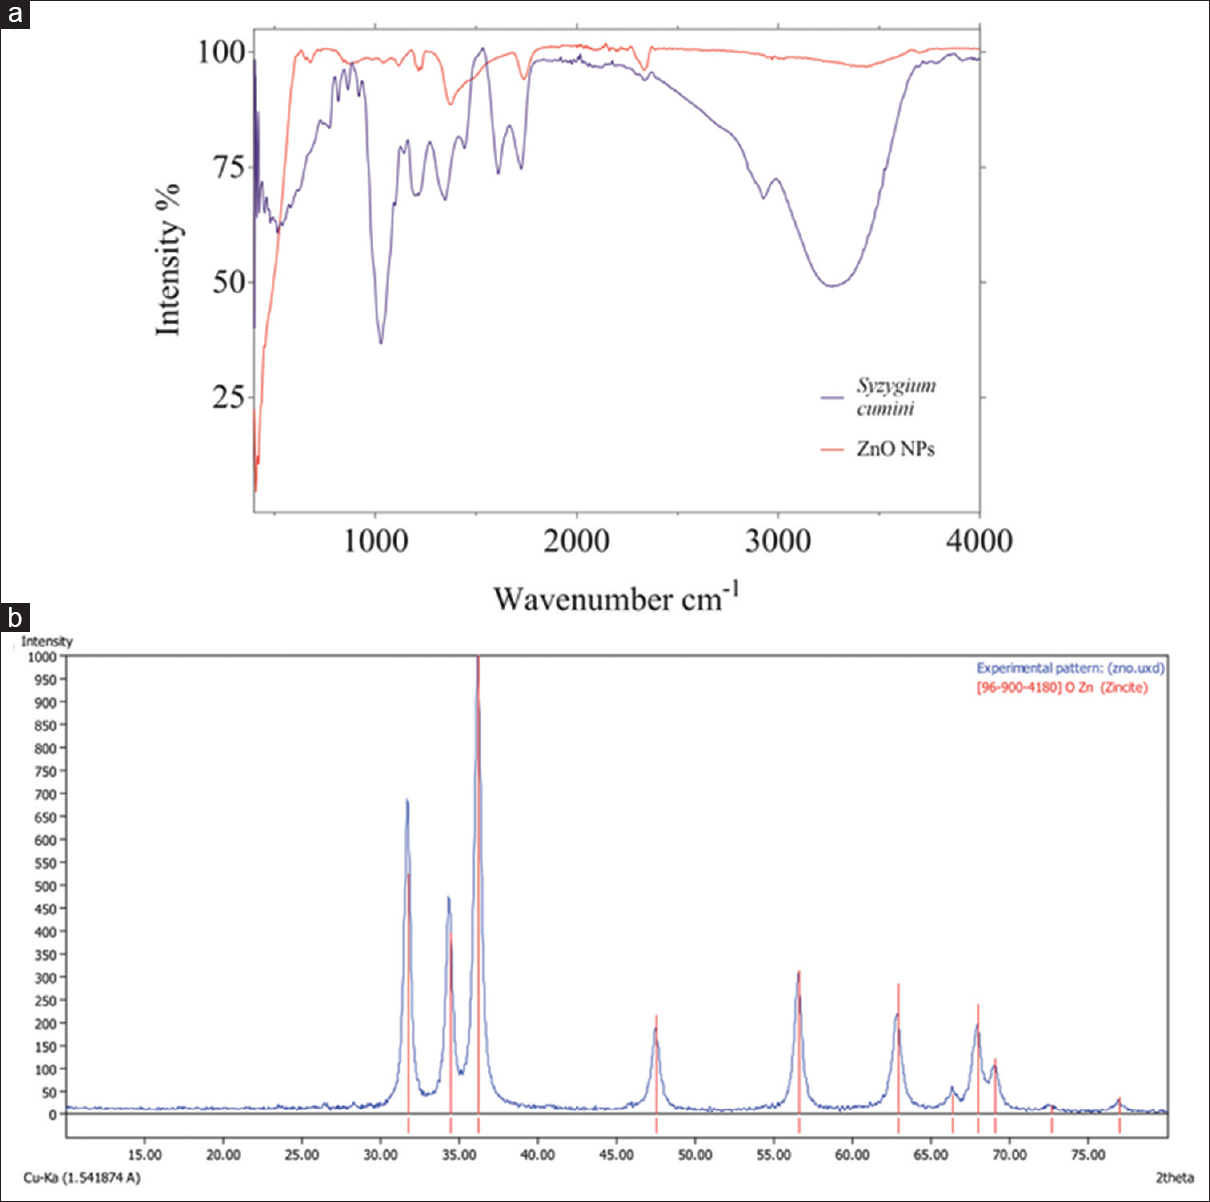 Figure 2: Spectral characterization of zinc oxide nanoparticles (a) Fourier transform-infrared chromatogram of zinc oxide nanoparticles and <i>Syzygium cumini</i> seed extract and (b) X-ray diffraction spectra showing the diffraction pattern of the synthesized zinc oxide nanoparticles